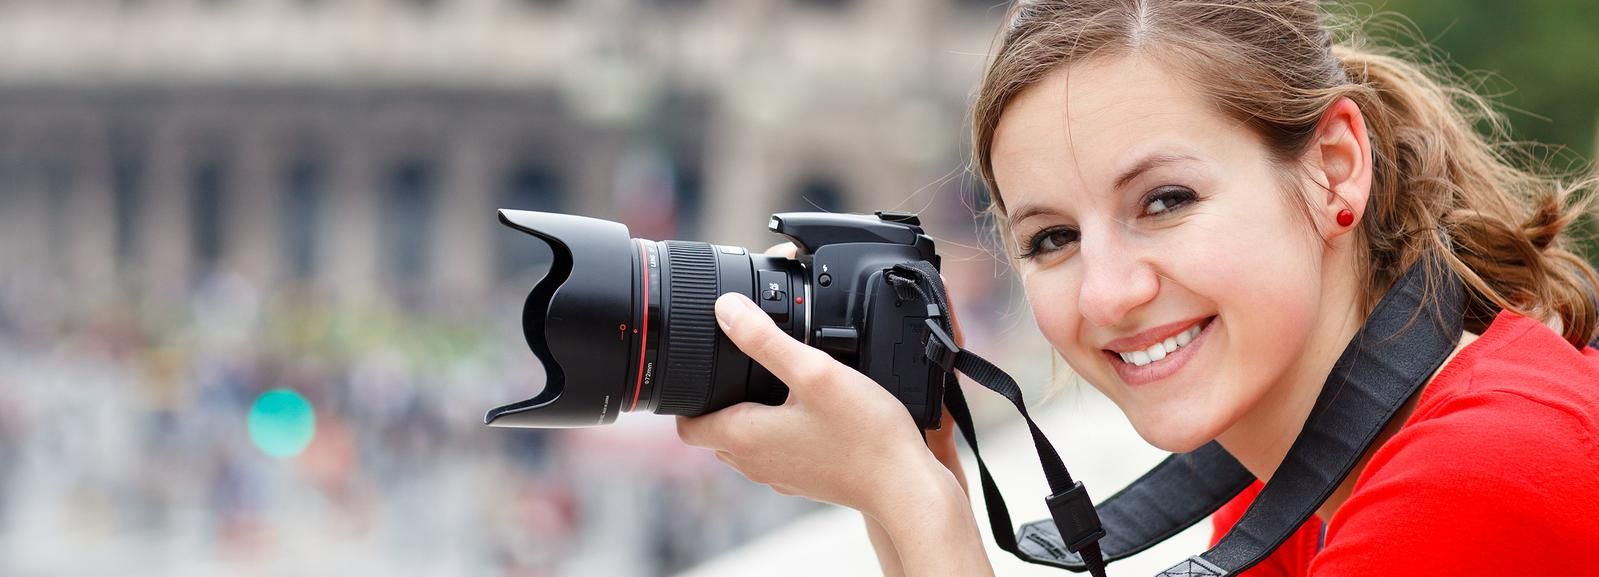 Rome: Personal Photo Shoot with Professional Camera